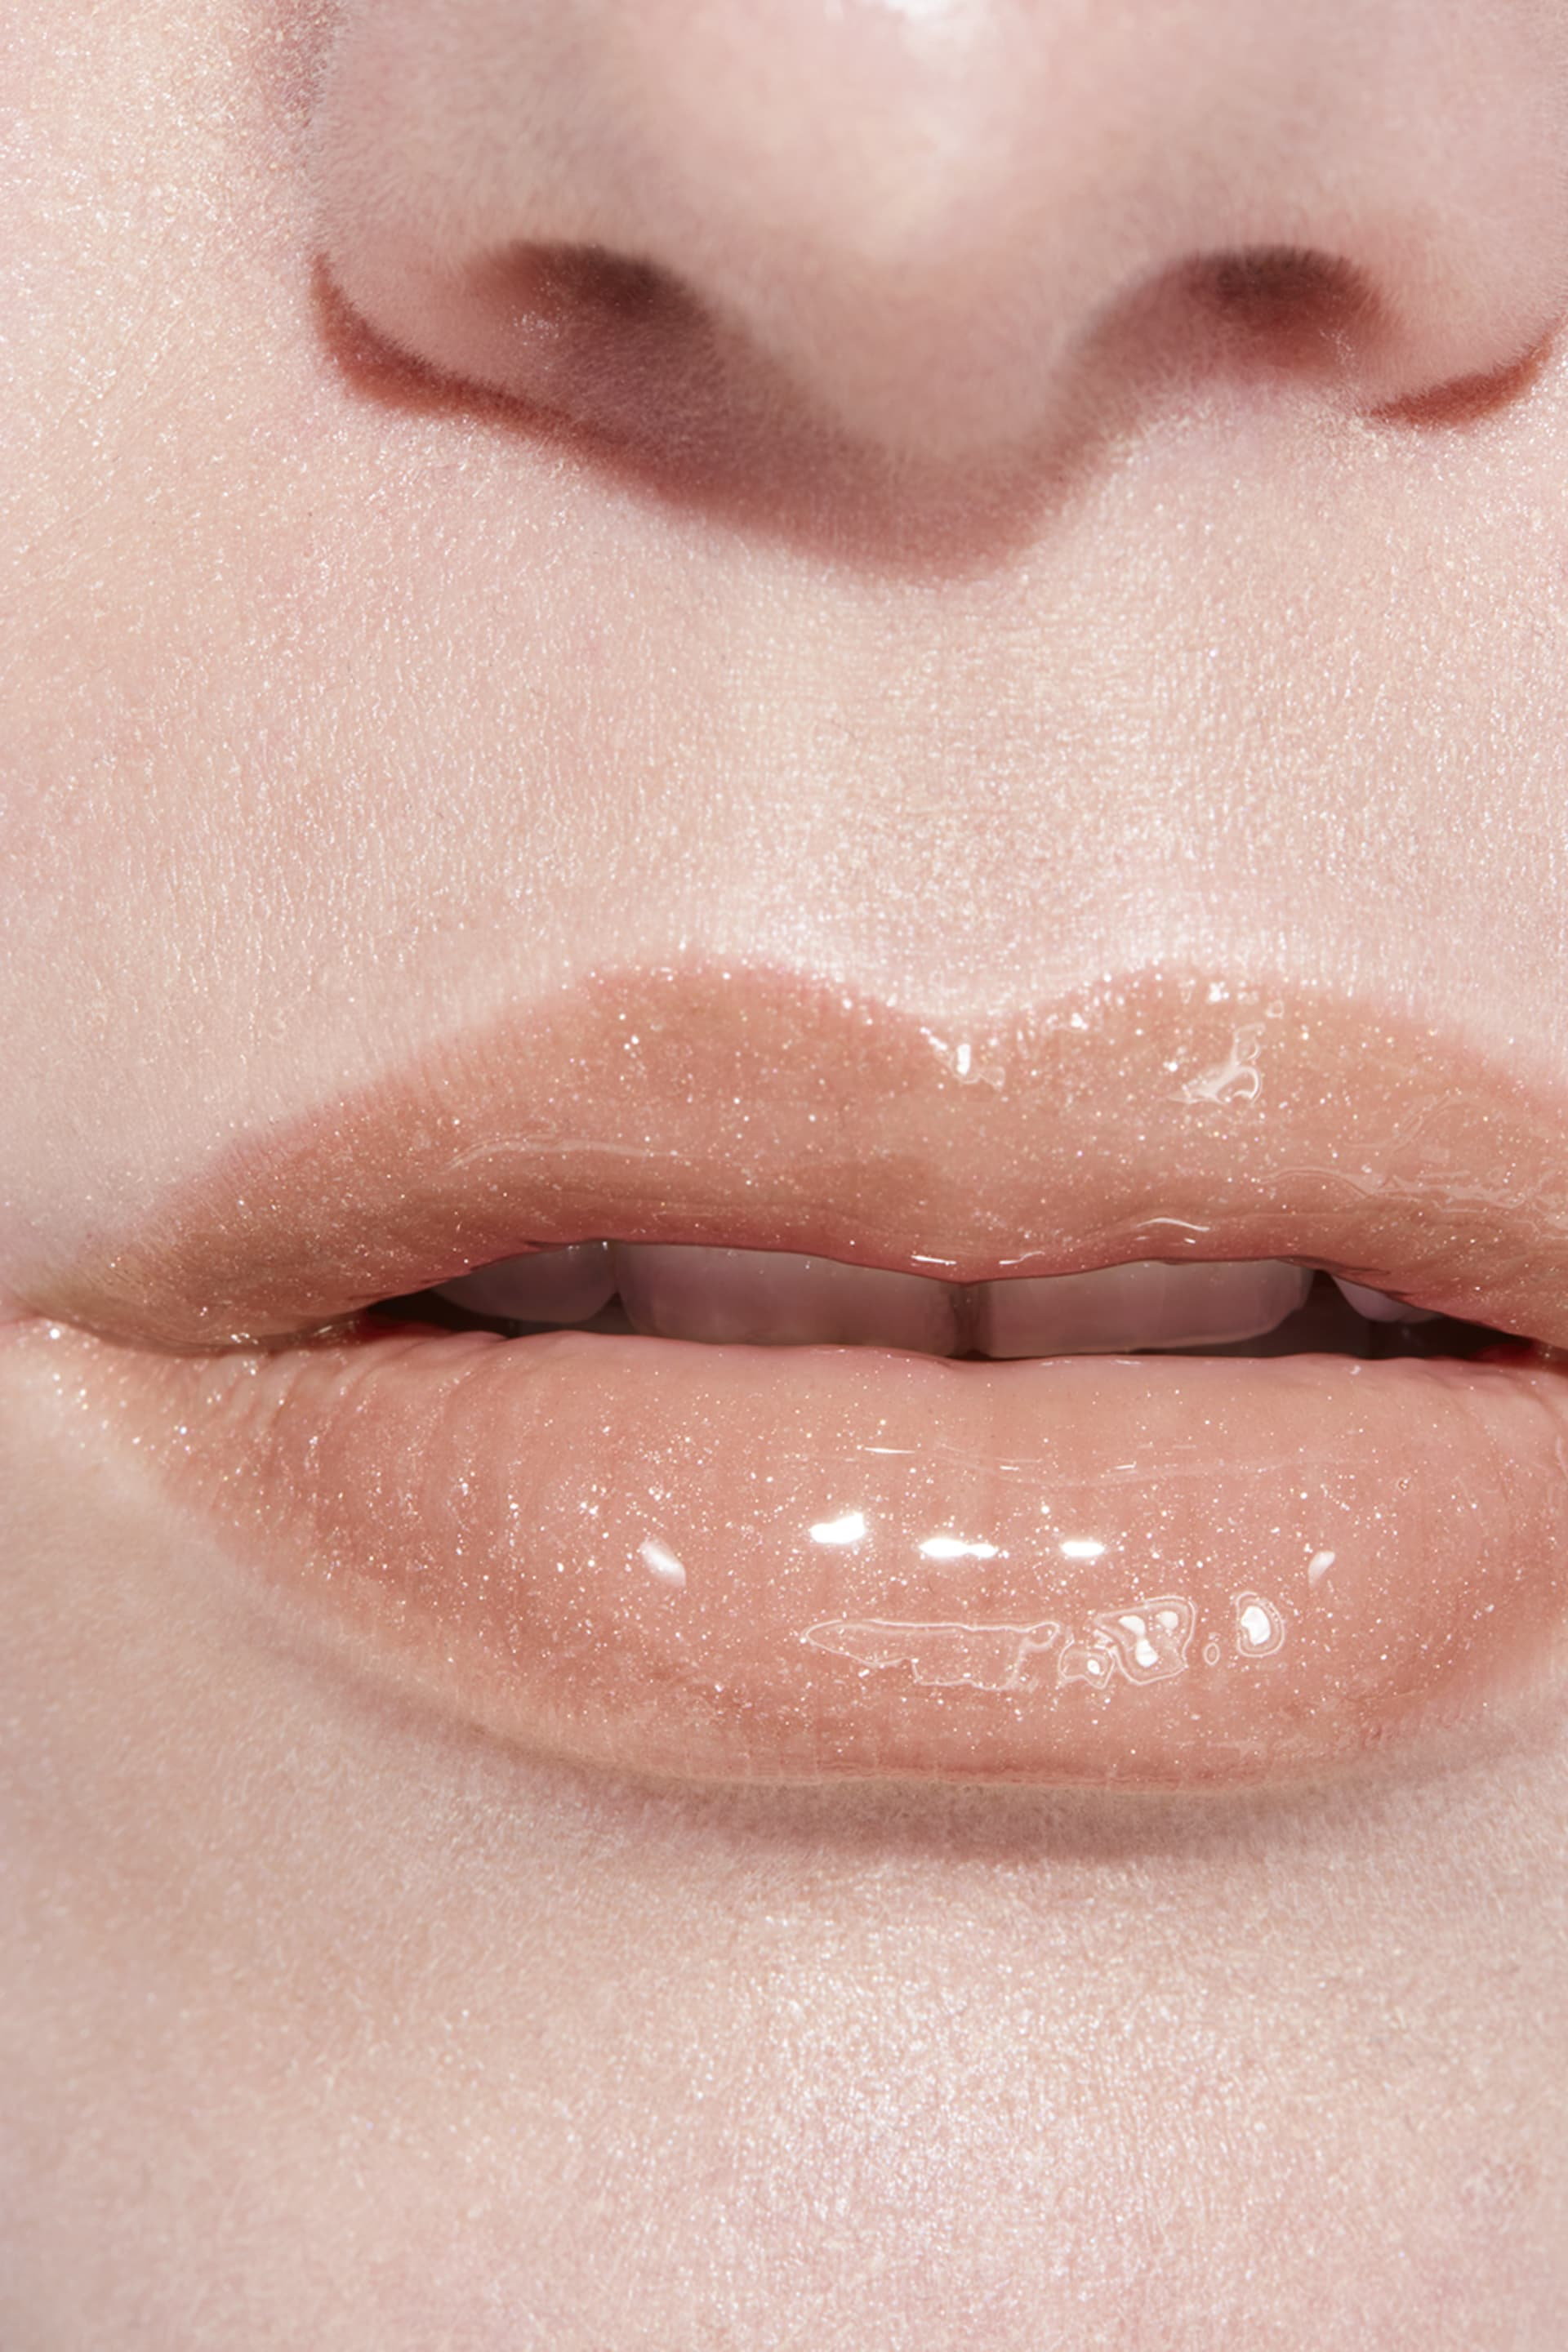 Visuel d'application maquillage 3 - ROUGE COCO GLOSS 712 - MELTED HONEY